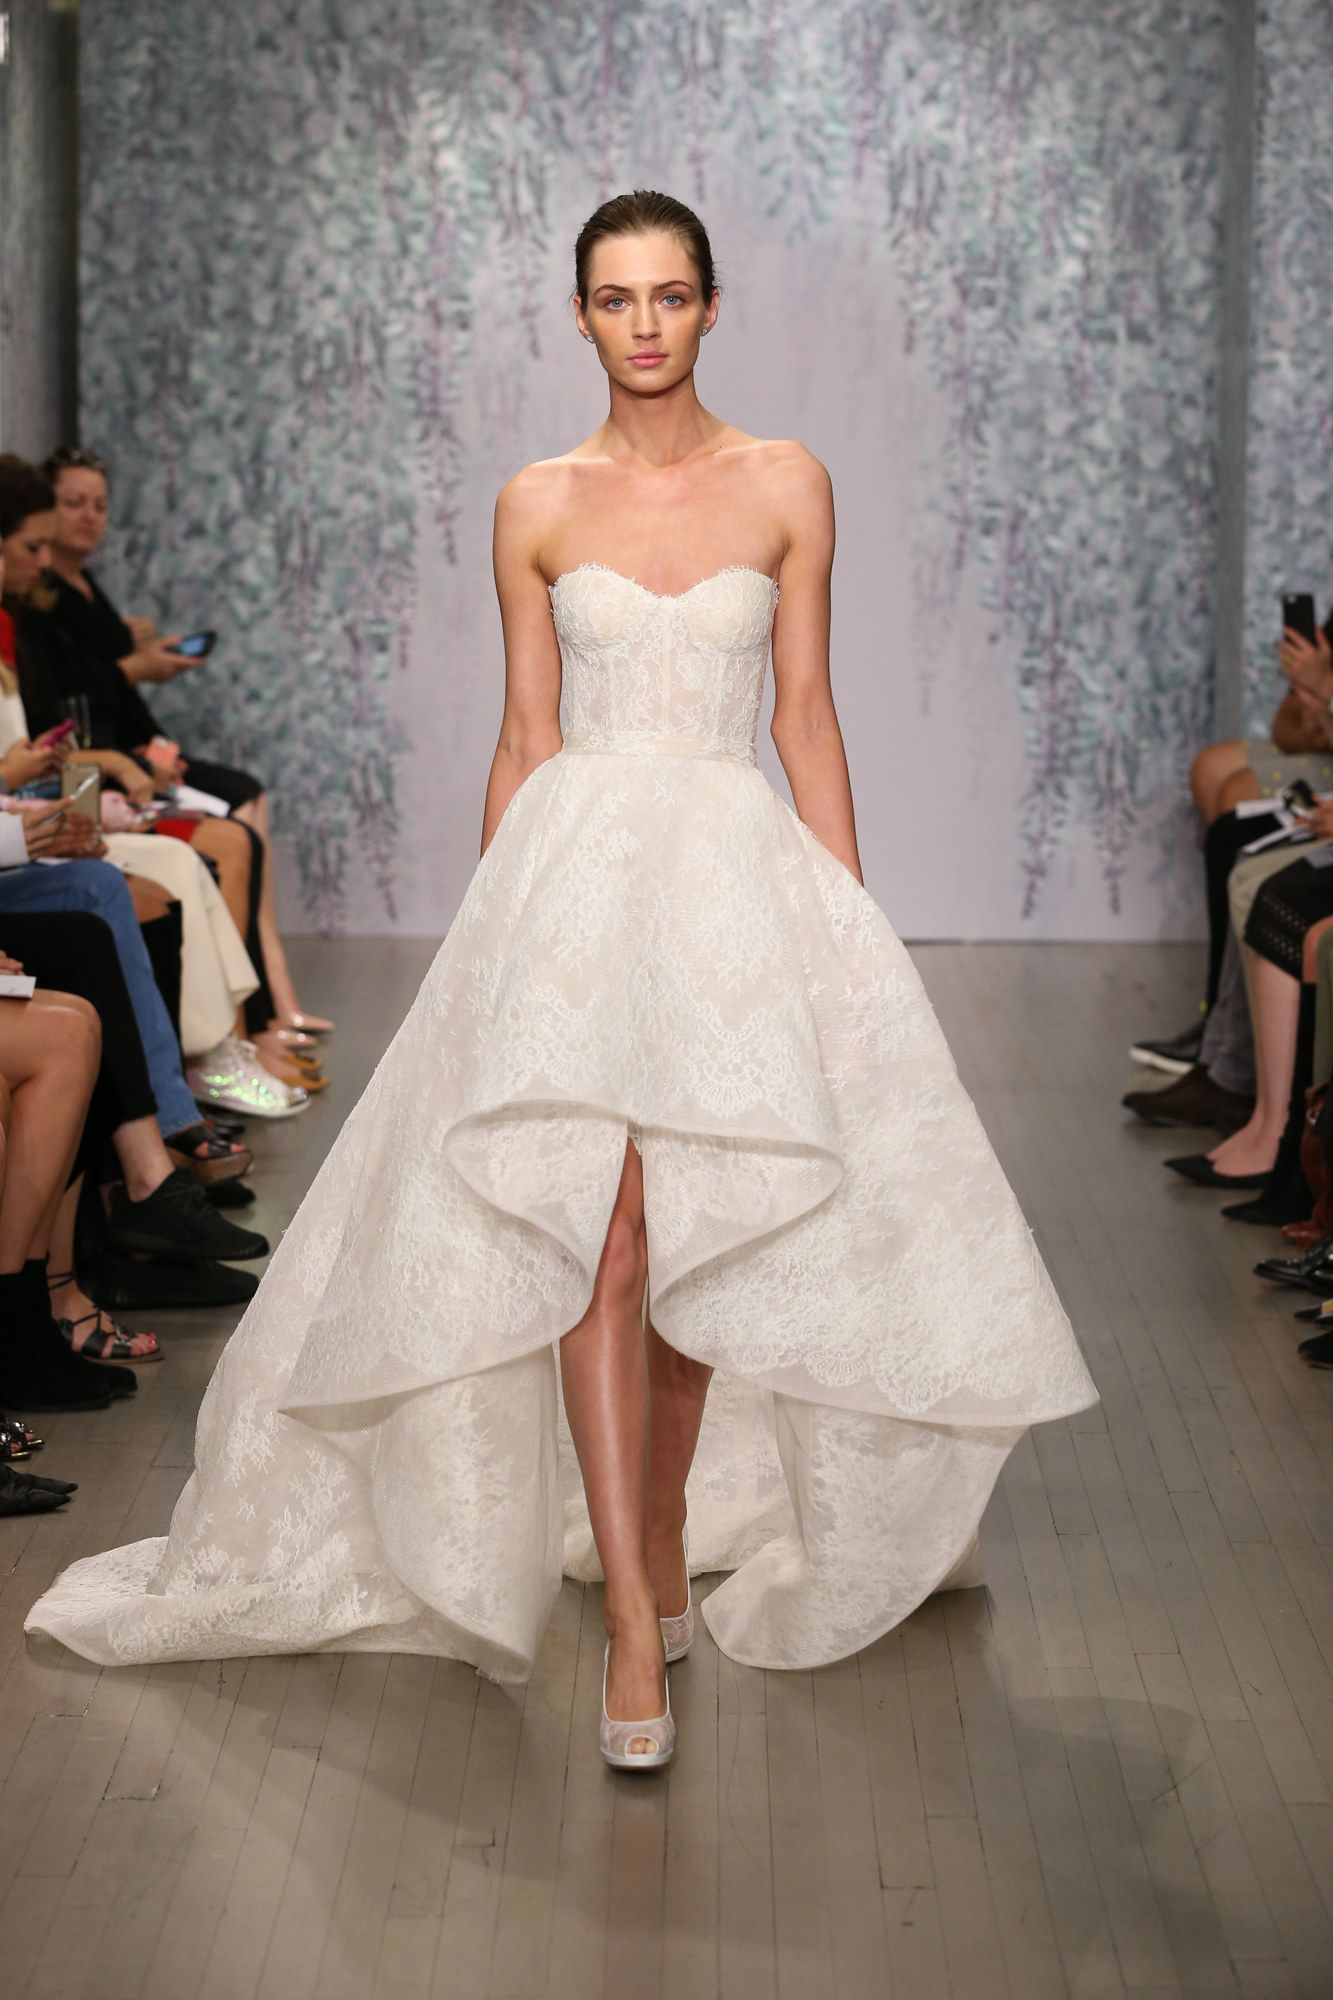 monique lhuillier bridal fall 2016 fashion show | monique